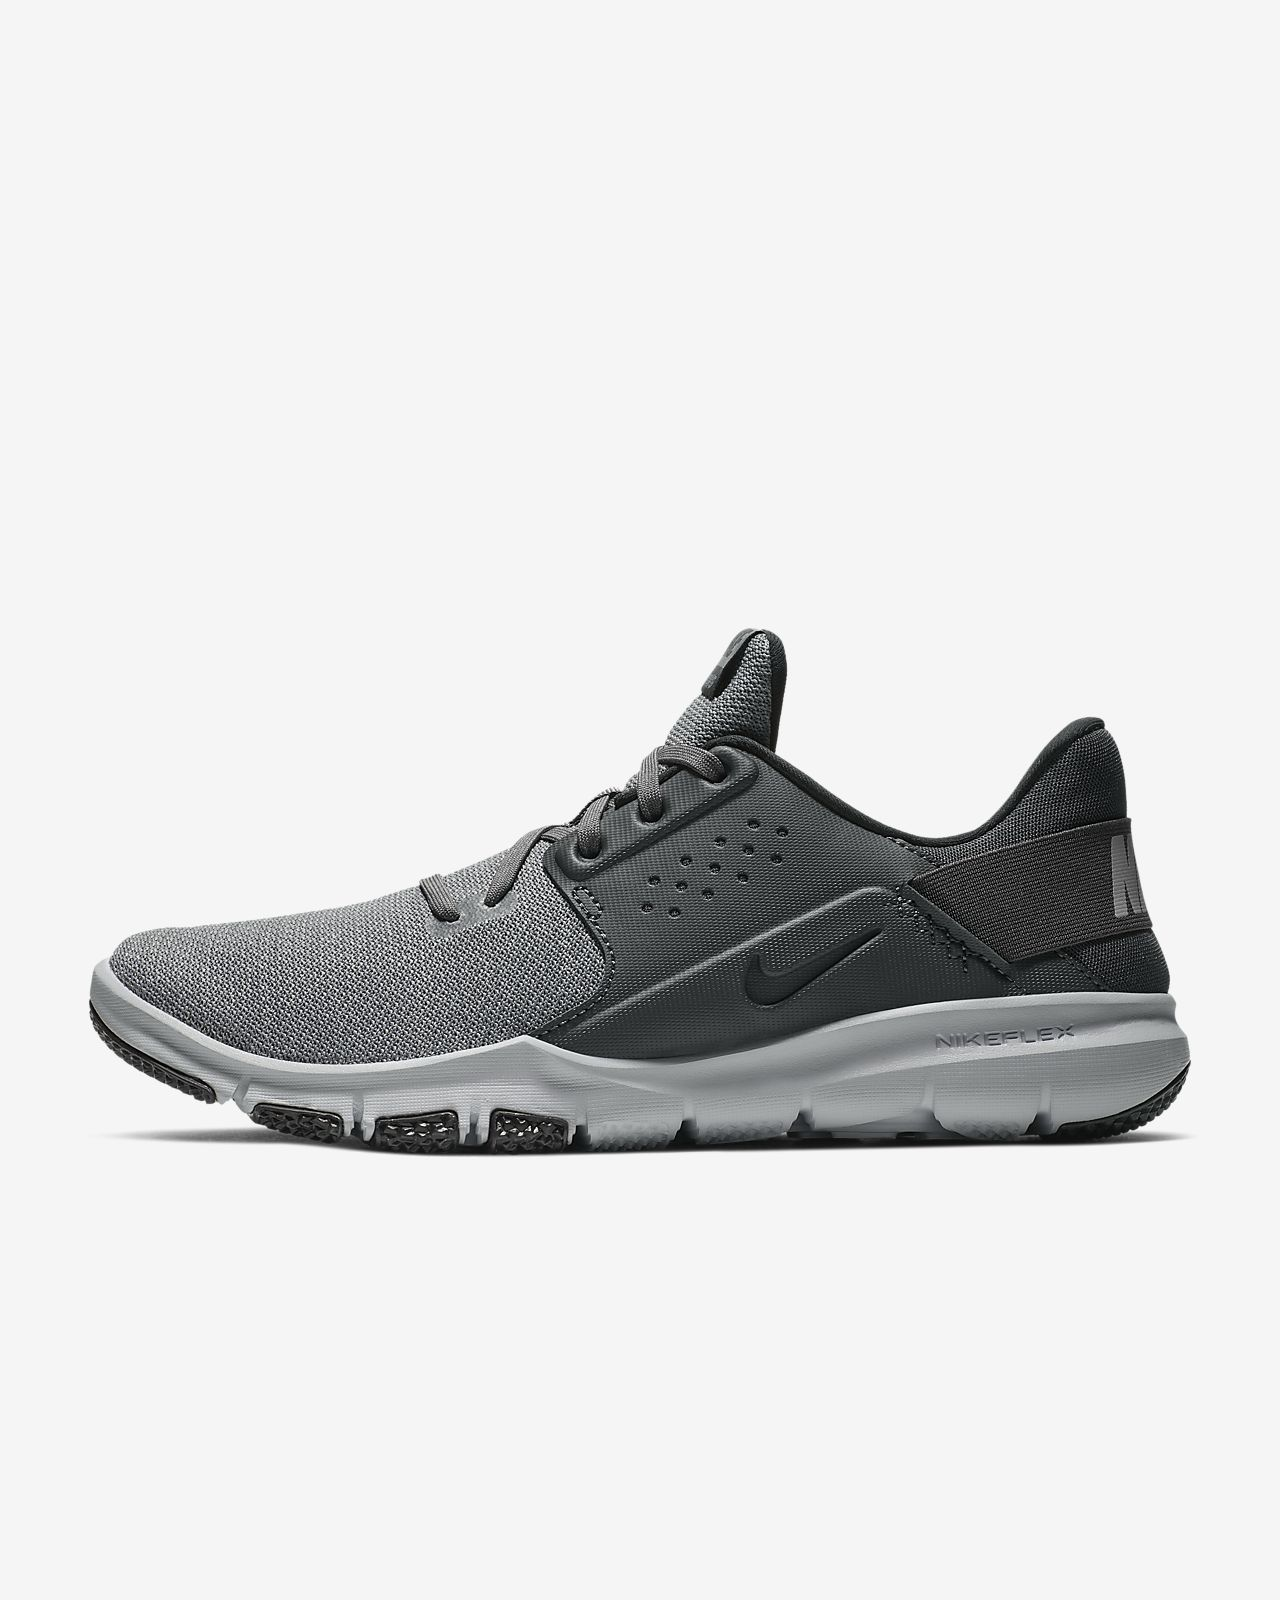 a28d1249184a Nike Flex Control 3 Men s Training Shoe. Nike.com